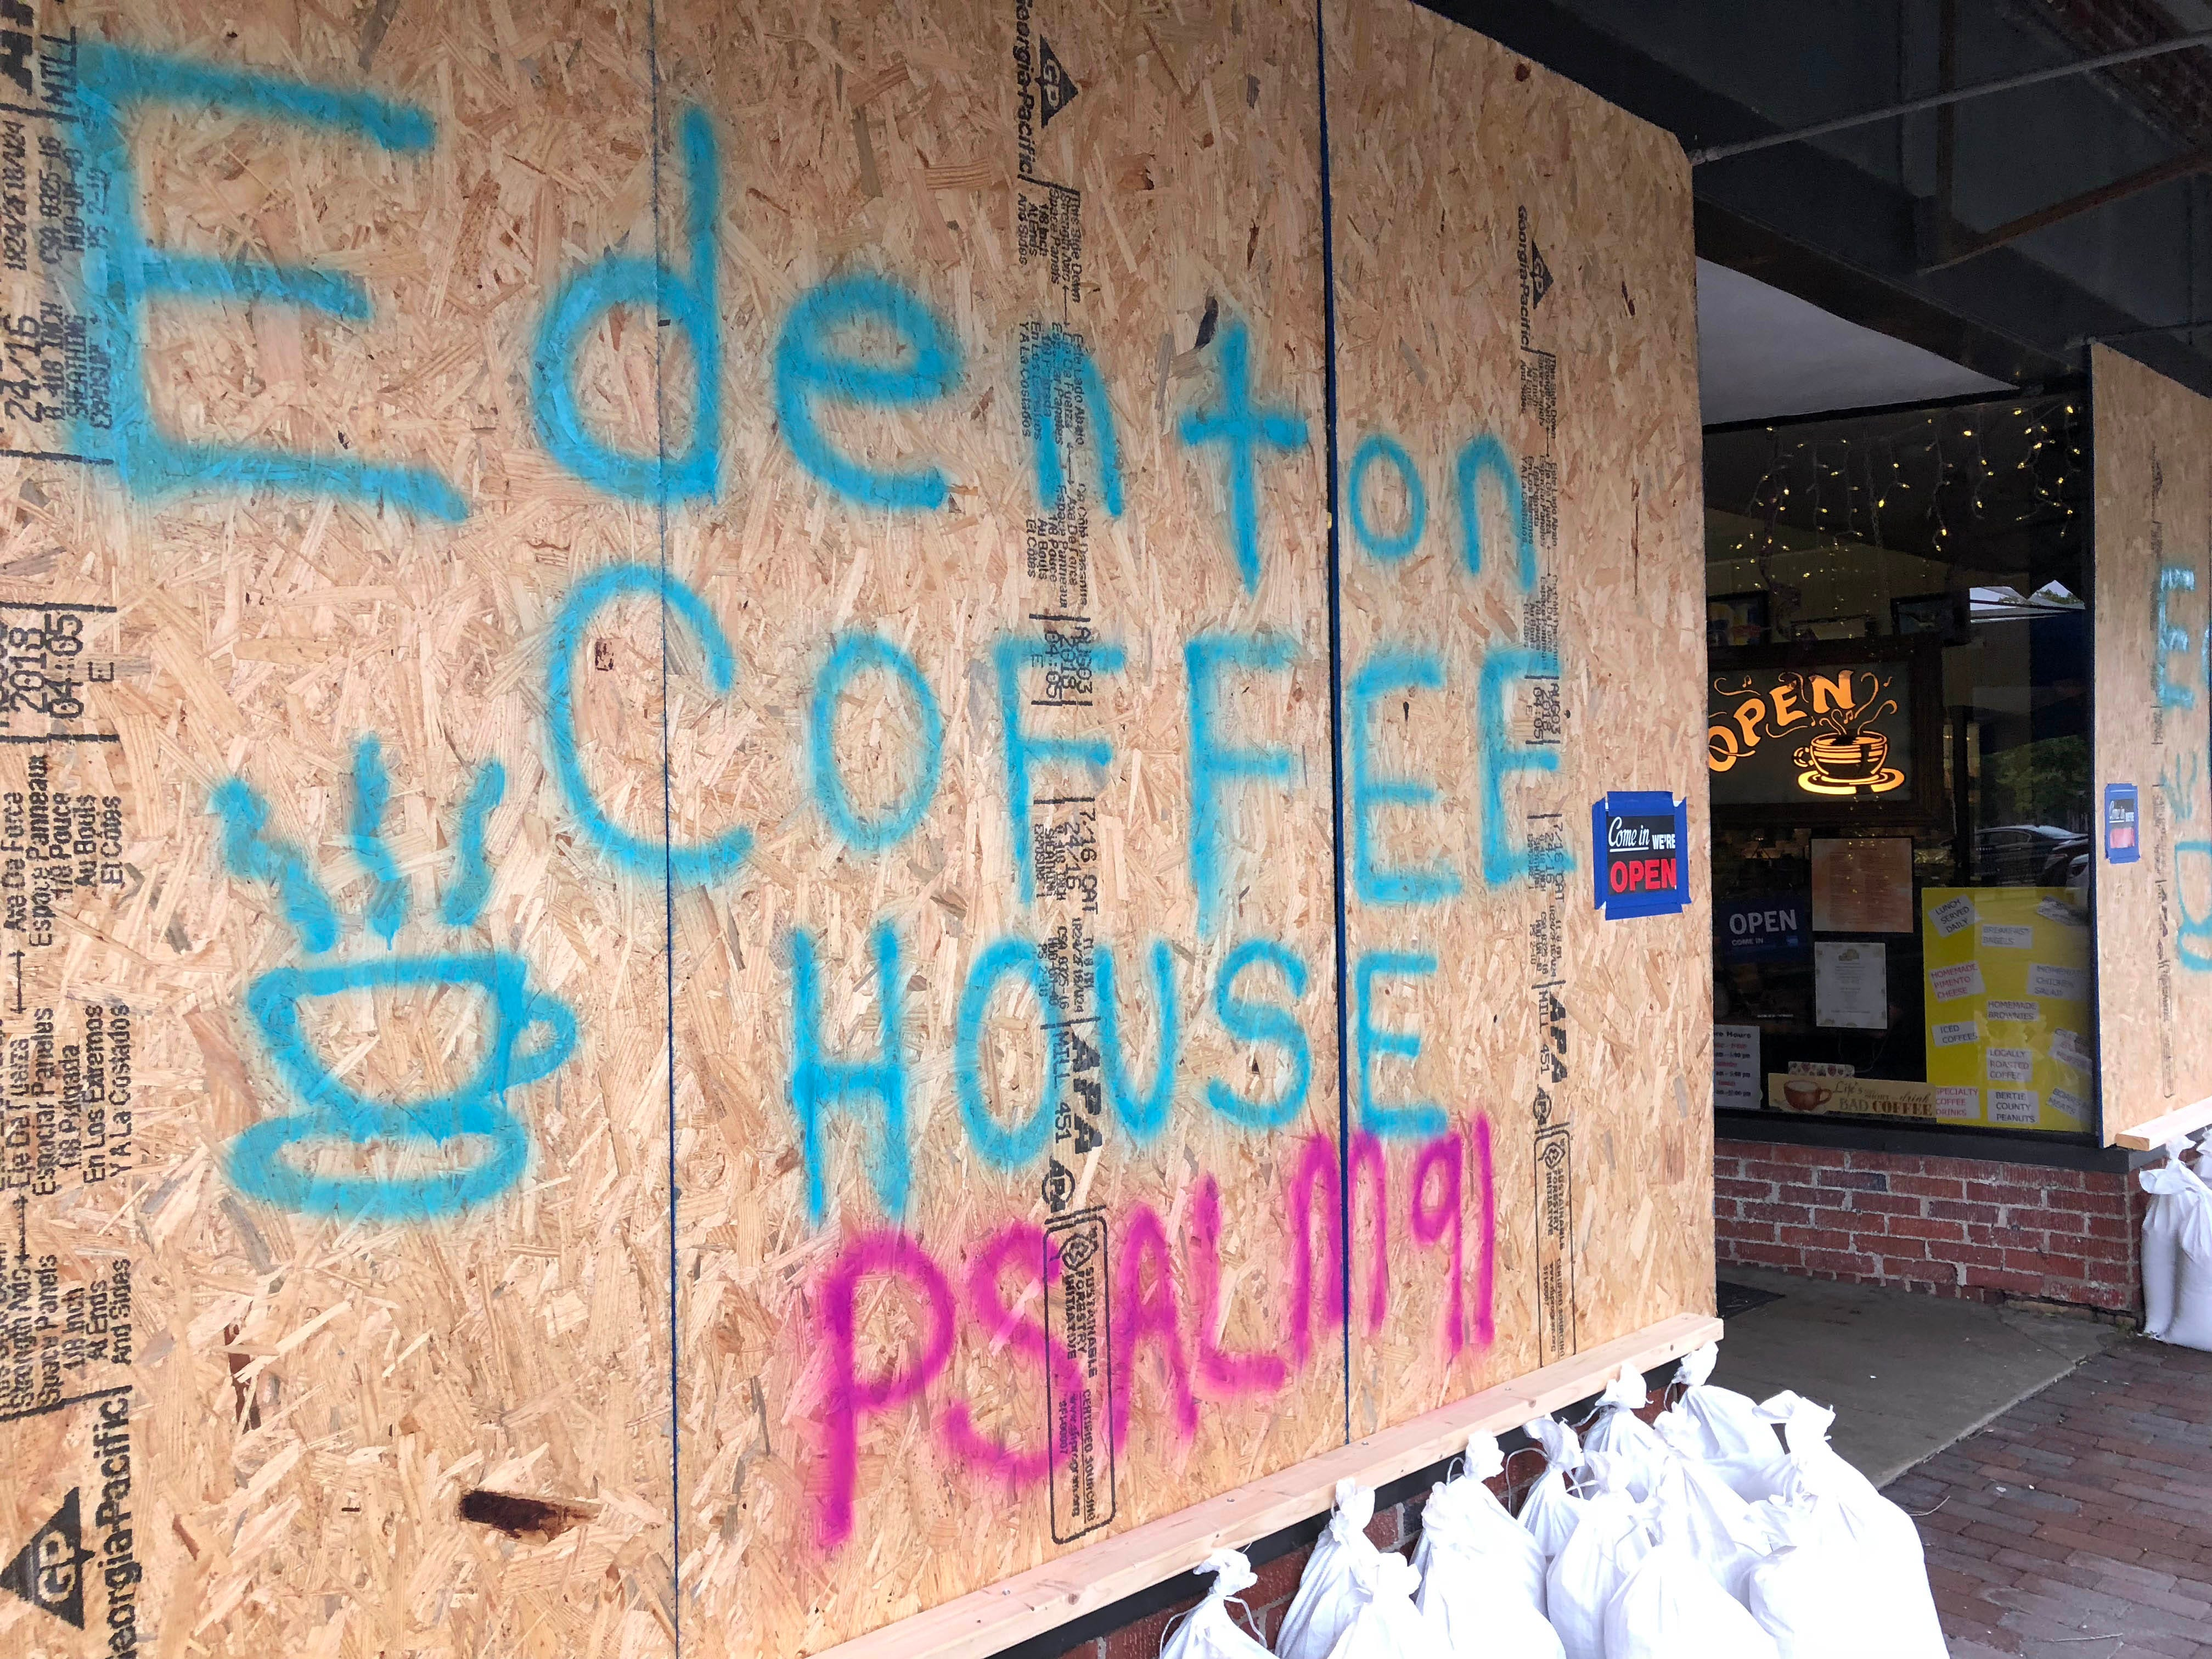 September 14, 2018; Edenton, NC, USA; This is the Edenton Coffee House in Edenton, N.C. The Employees slept in the shop overnight to avoid damage from Hurricane Florence, Sept 14, 2018.